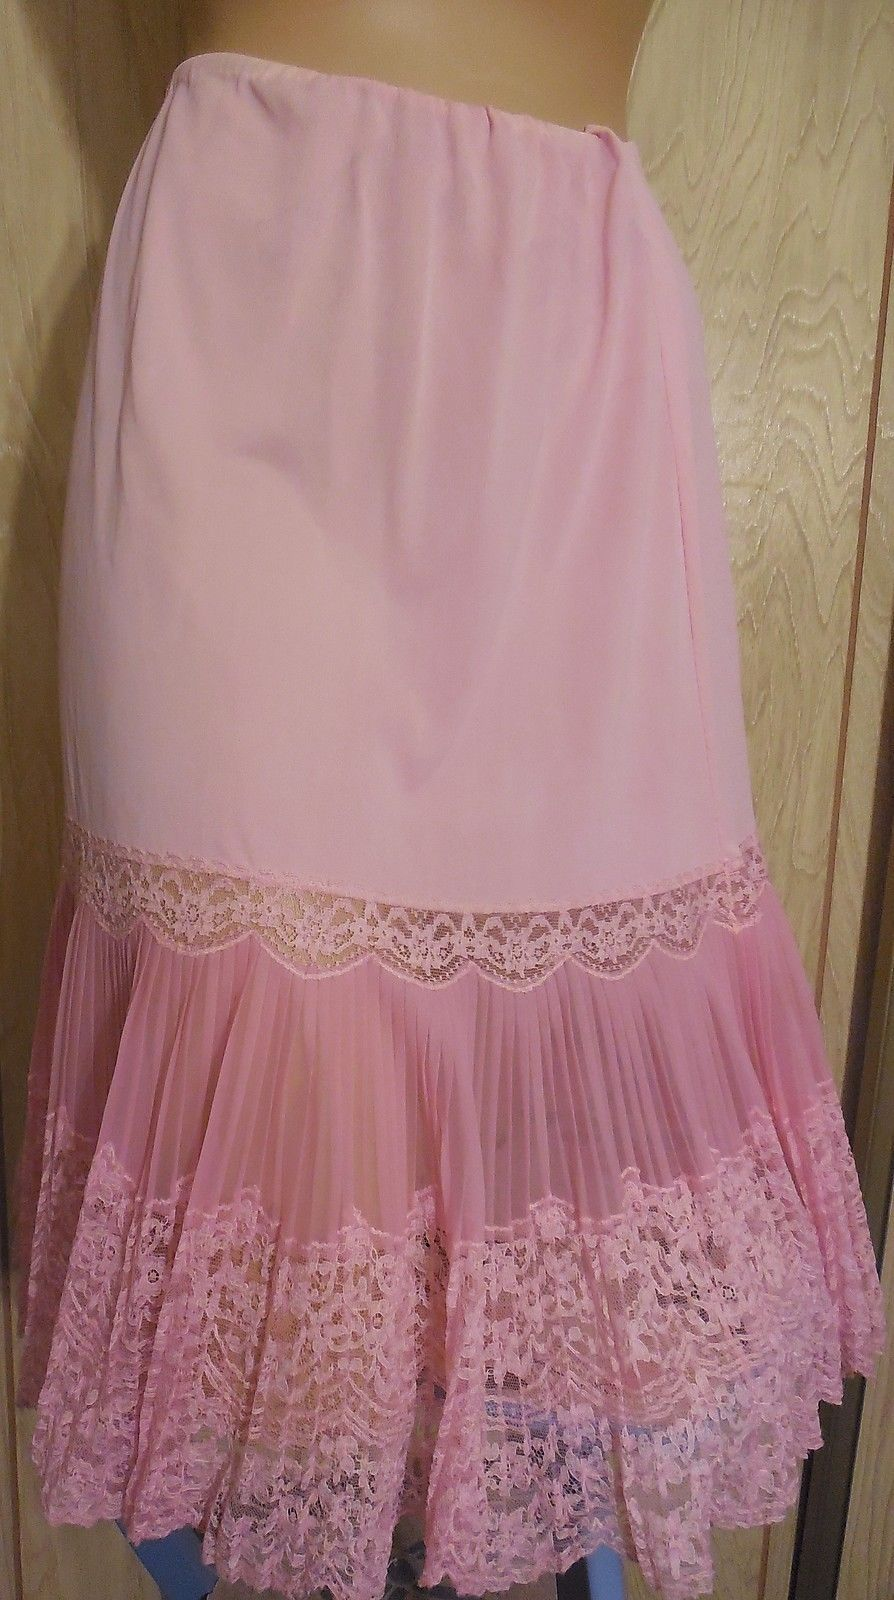 I Love Wearing Long Pink Vintage Silky Nylon Slips As They -1374